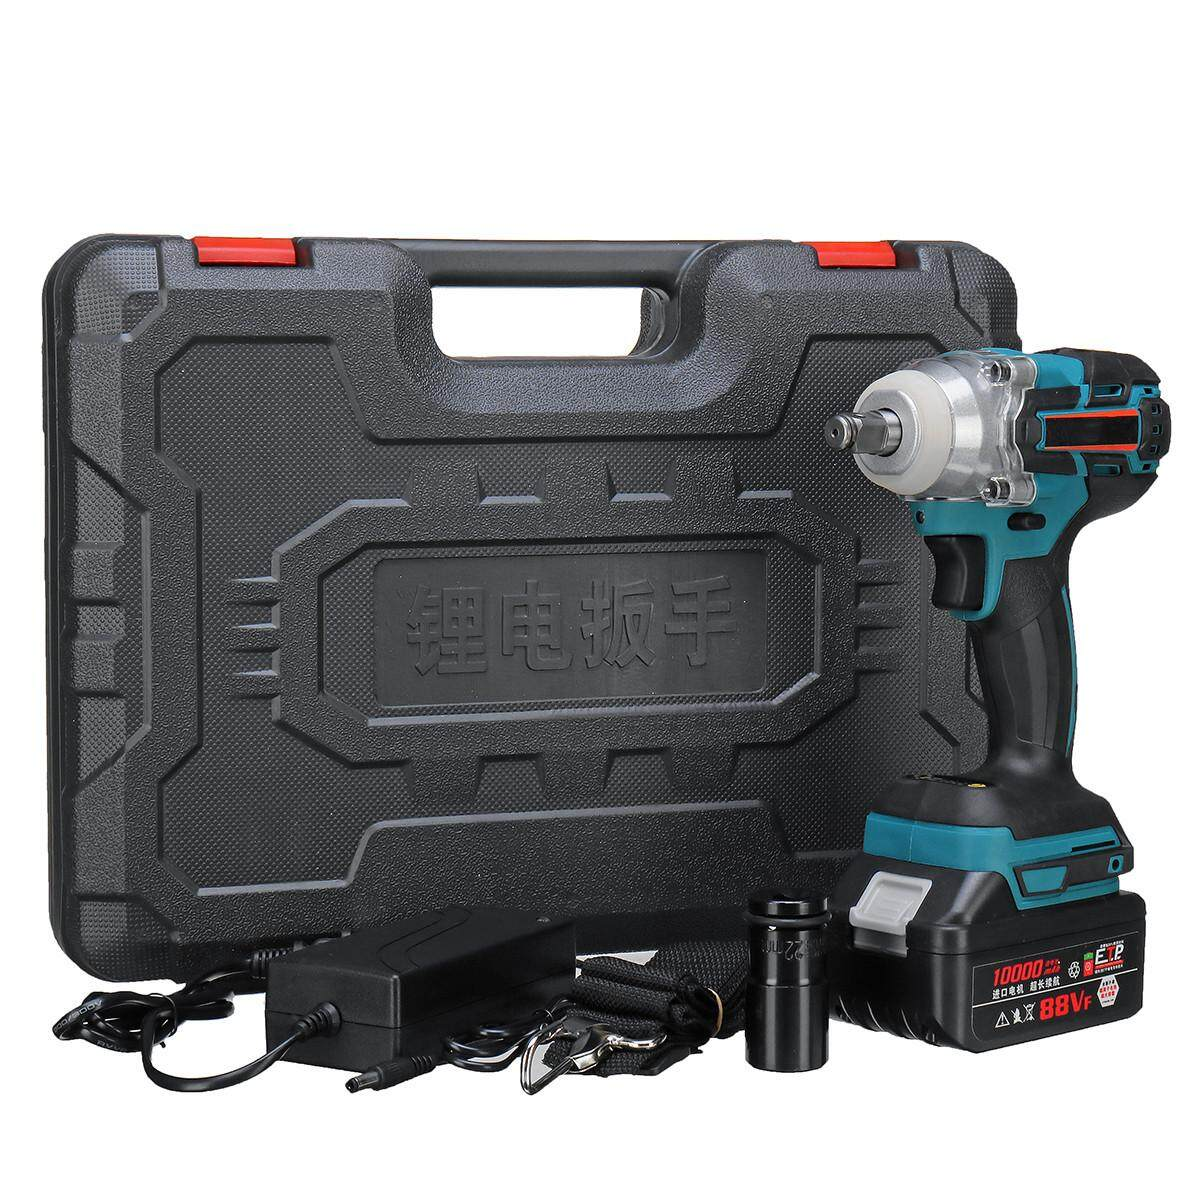 Brushless Cordless 21V 330Nm Electric Impact Wrench +10000mAh Li-Ion Battery